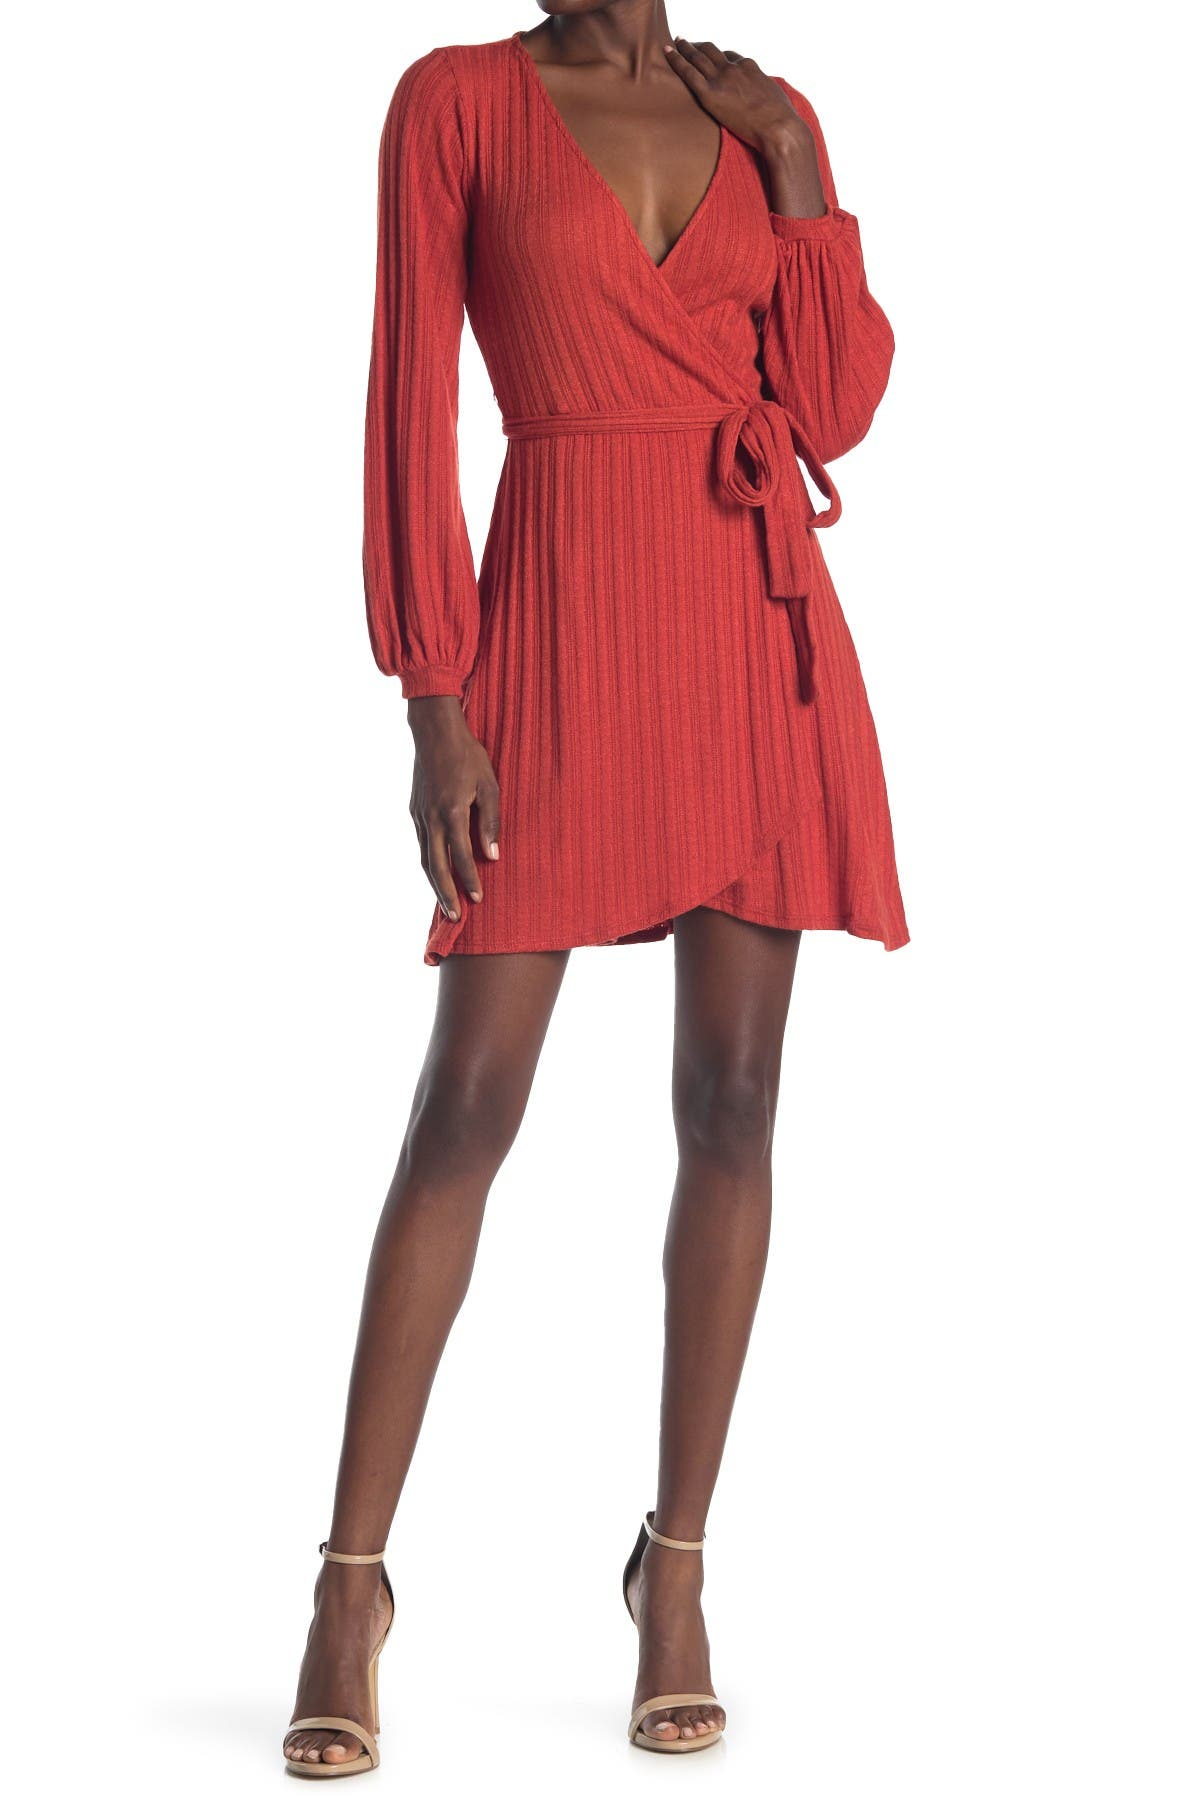 Image of KENEDIK Brushed Pointelle Surplice Neck Wrap Dress